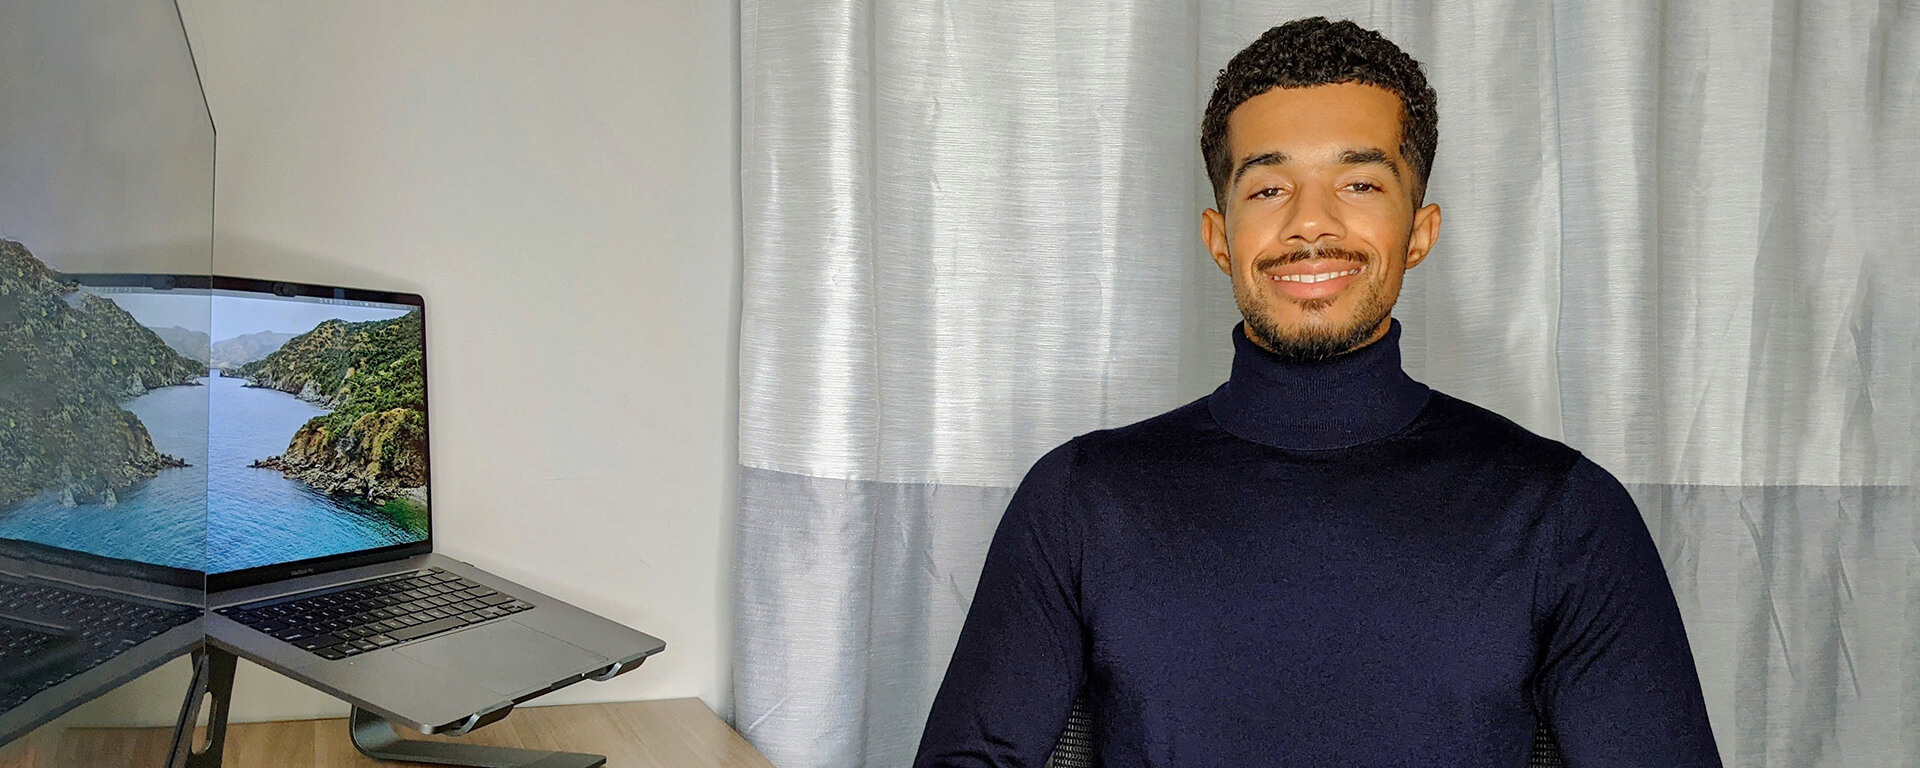 Carlton, a Capital One associate, talks about how he went from a Tech intern to a leader at Capital One